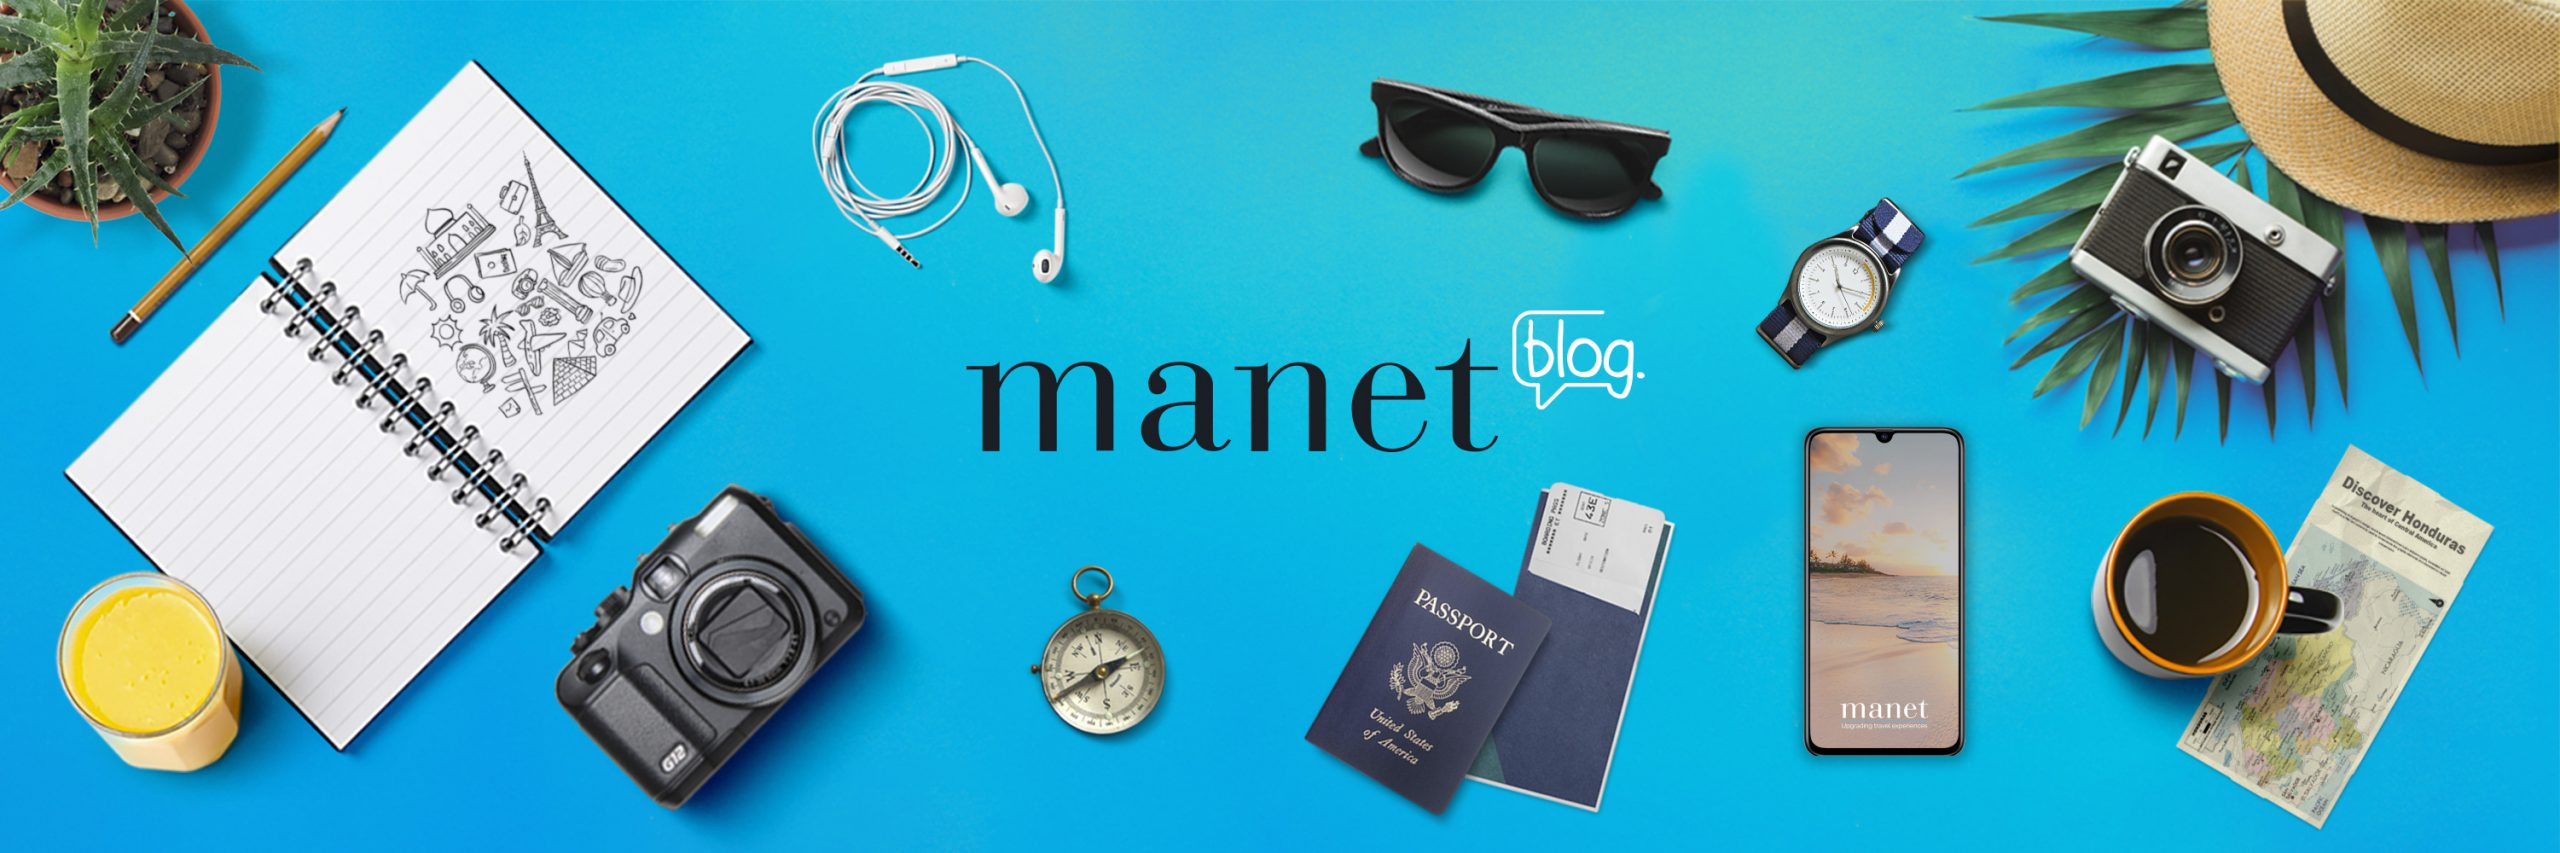 Manet - Travel & Hospitality Blog